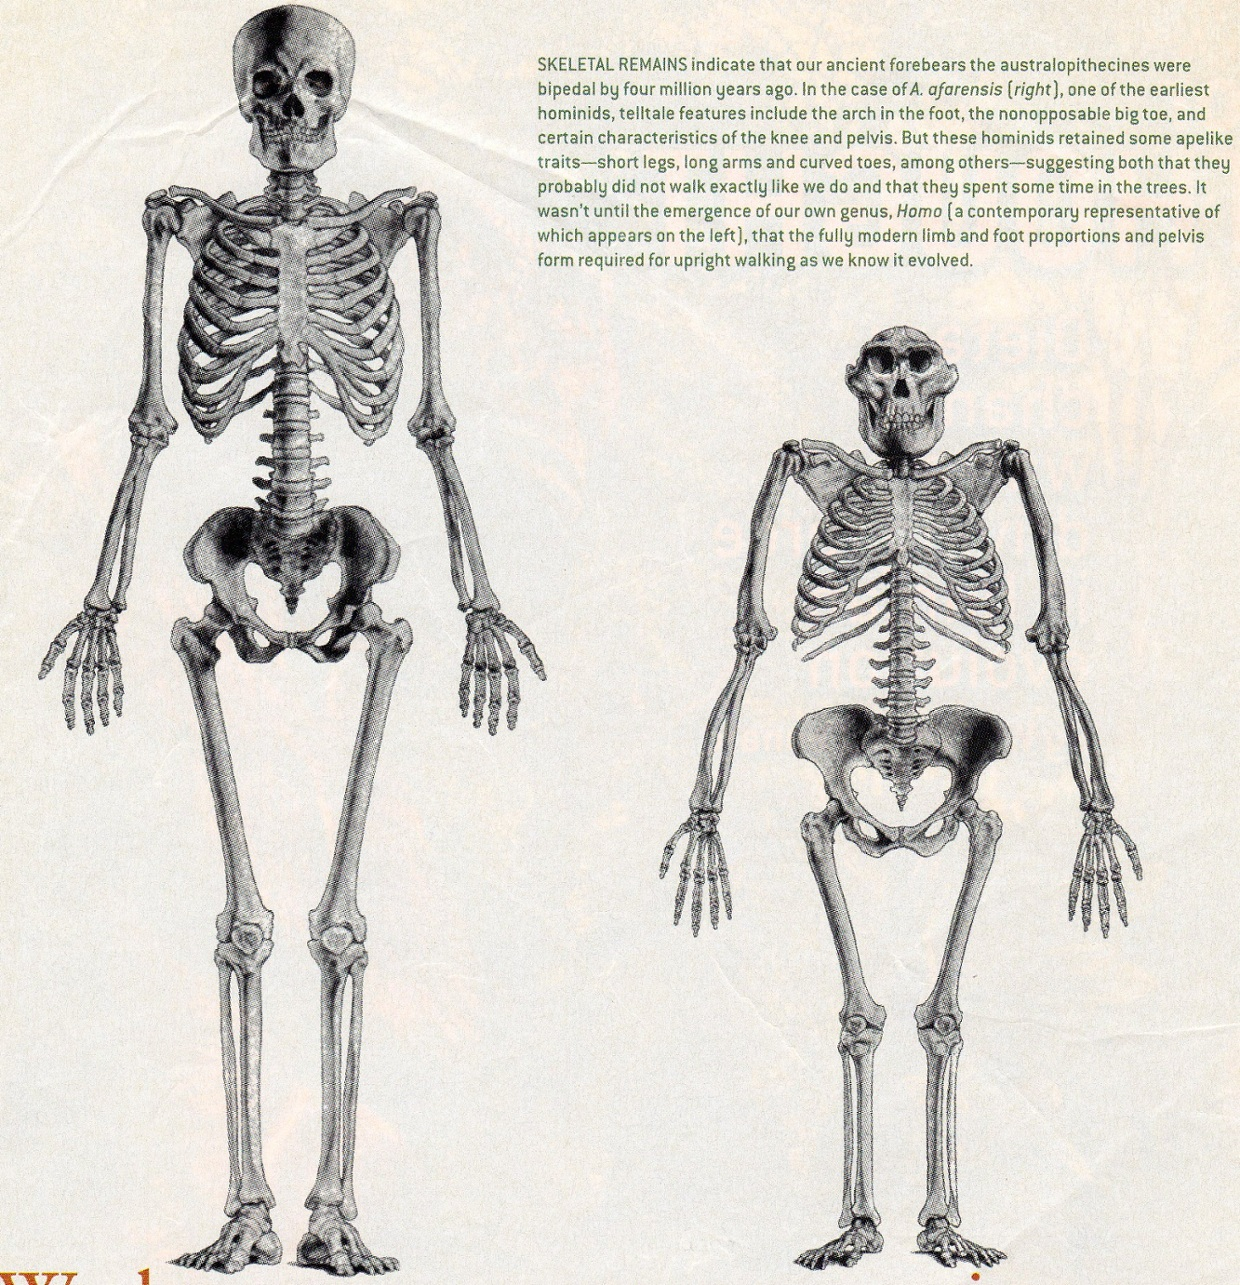 human skeleton vs chimpanzee skeleton – citybeauty, Skeleton